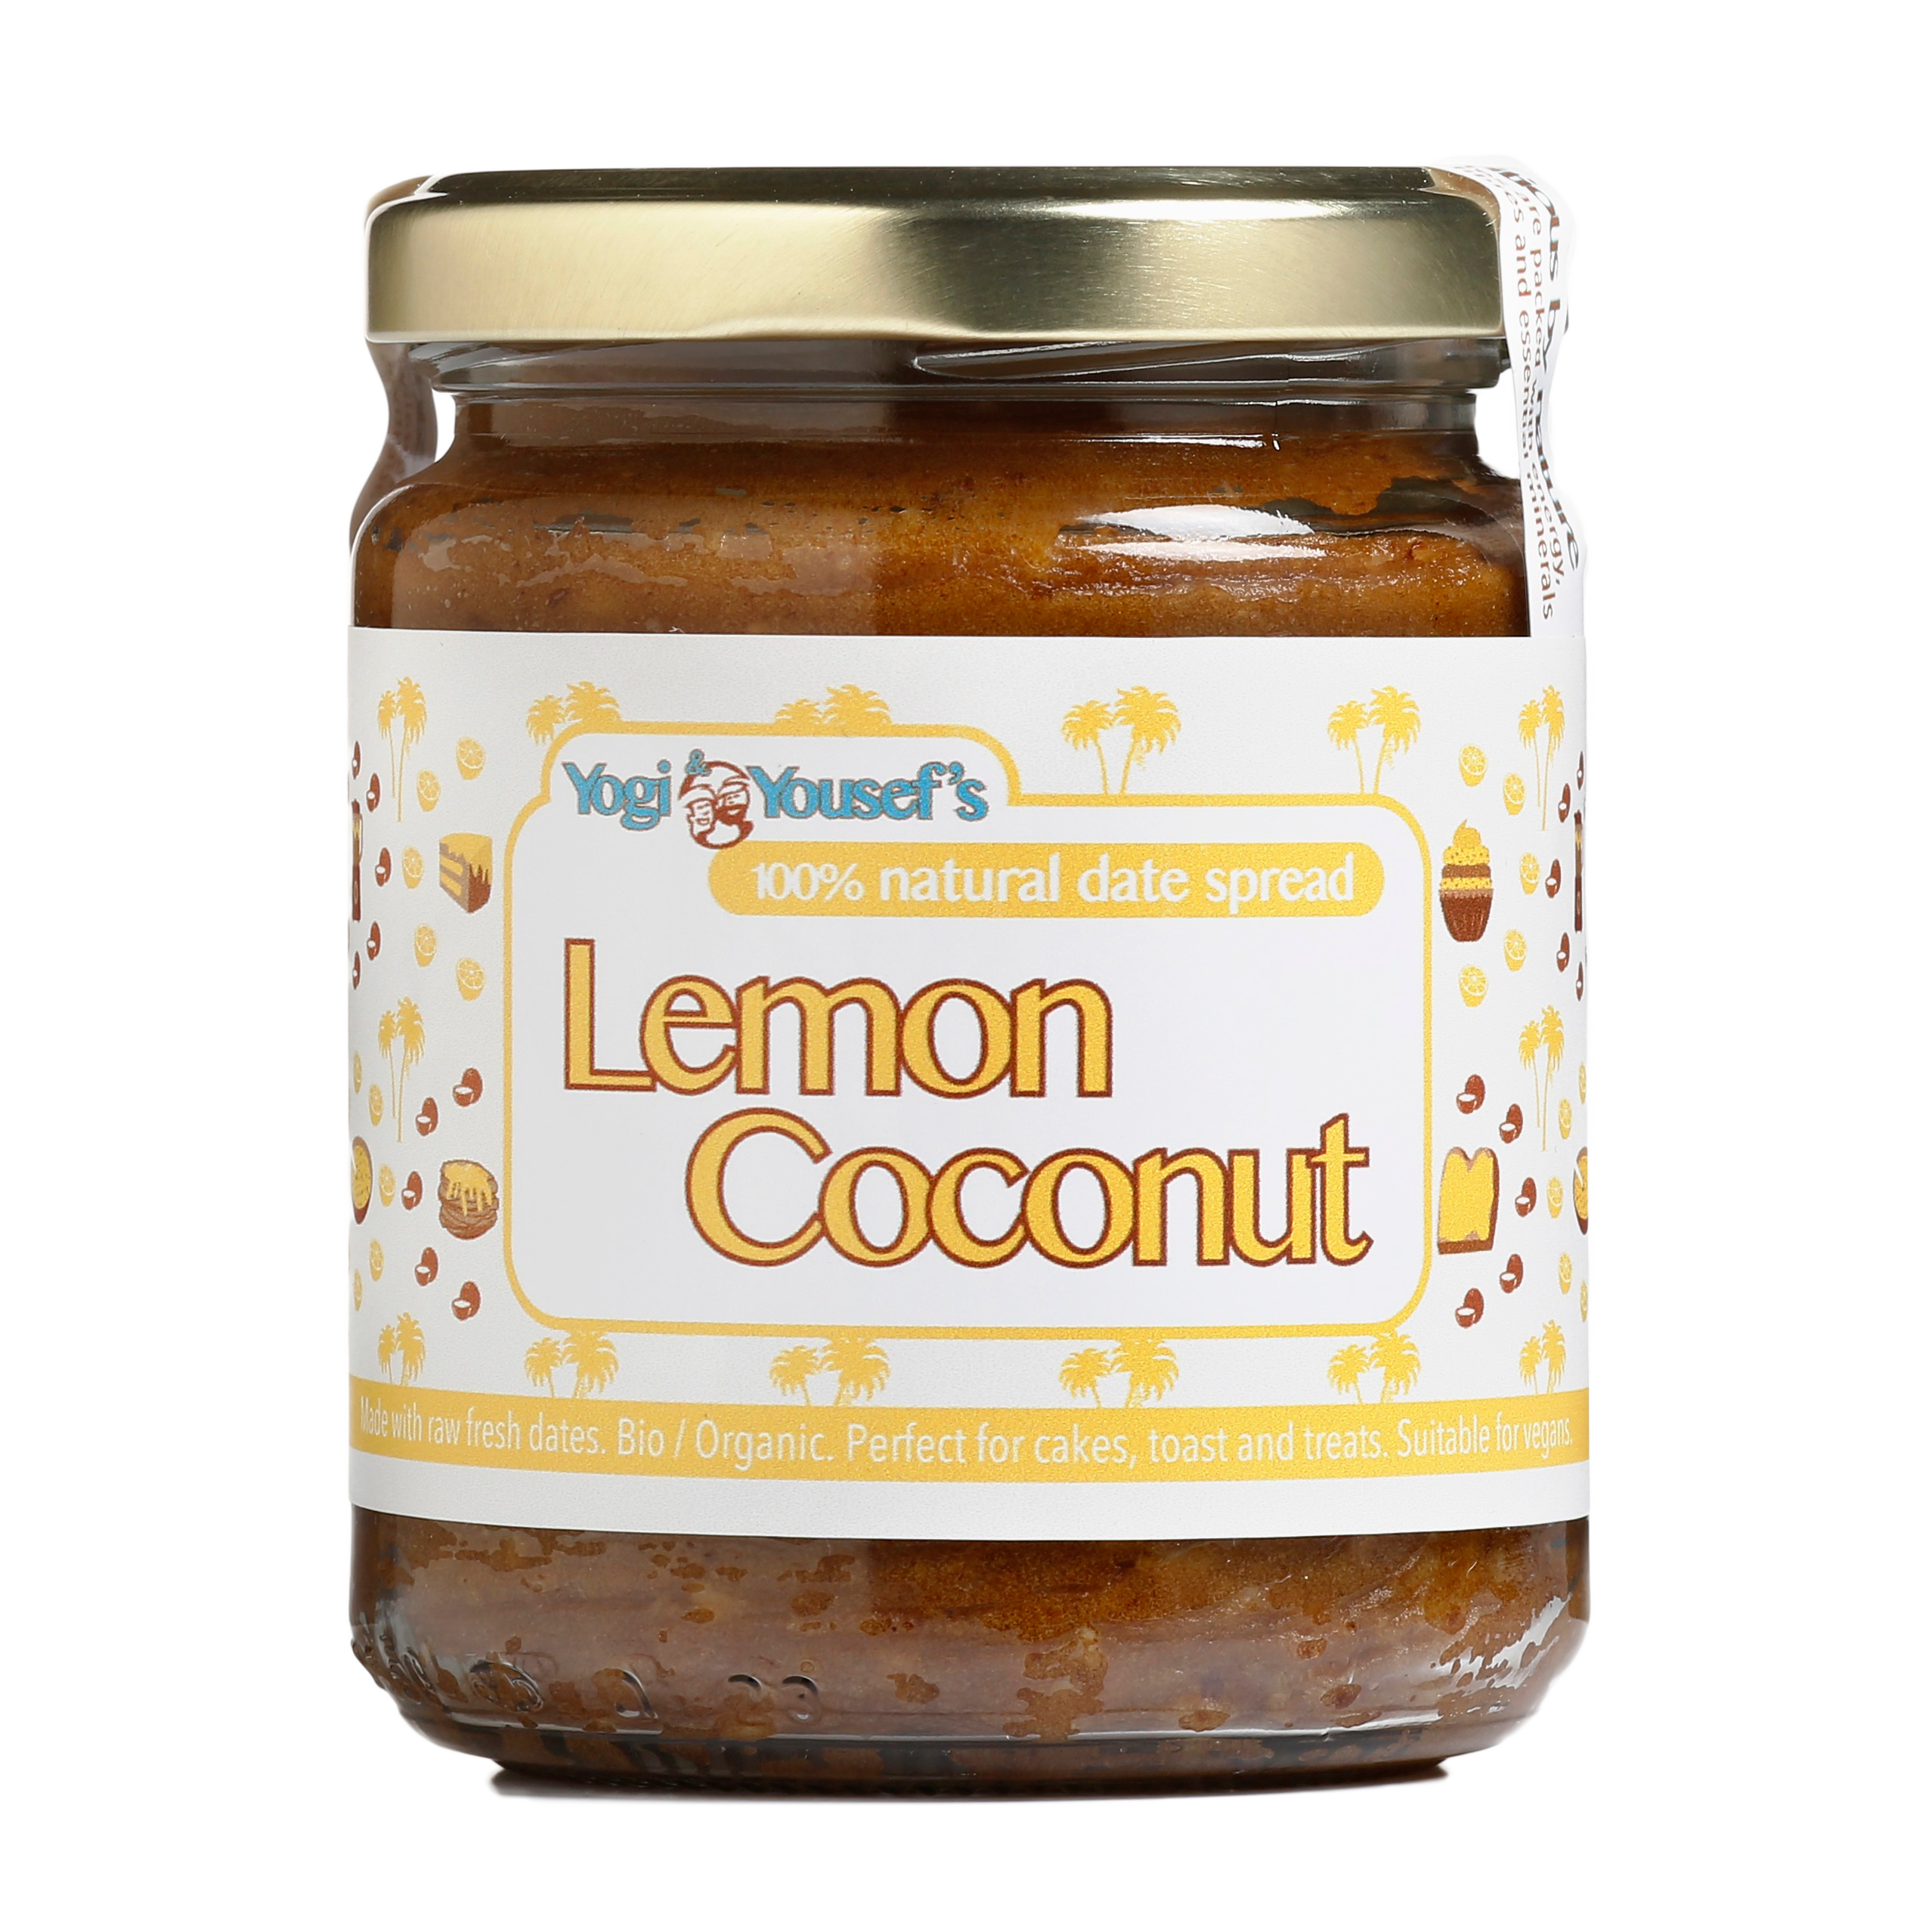 Dadelspread Lemon Coconut - Yogi & Yousef - product ontwerp - Dots & Lines